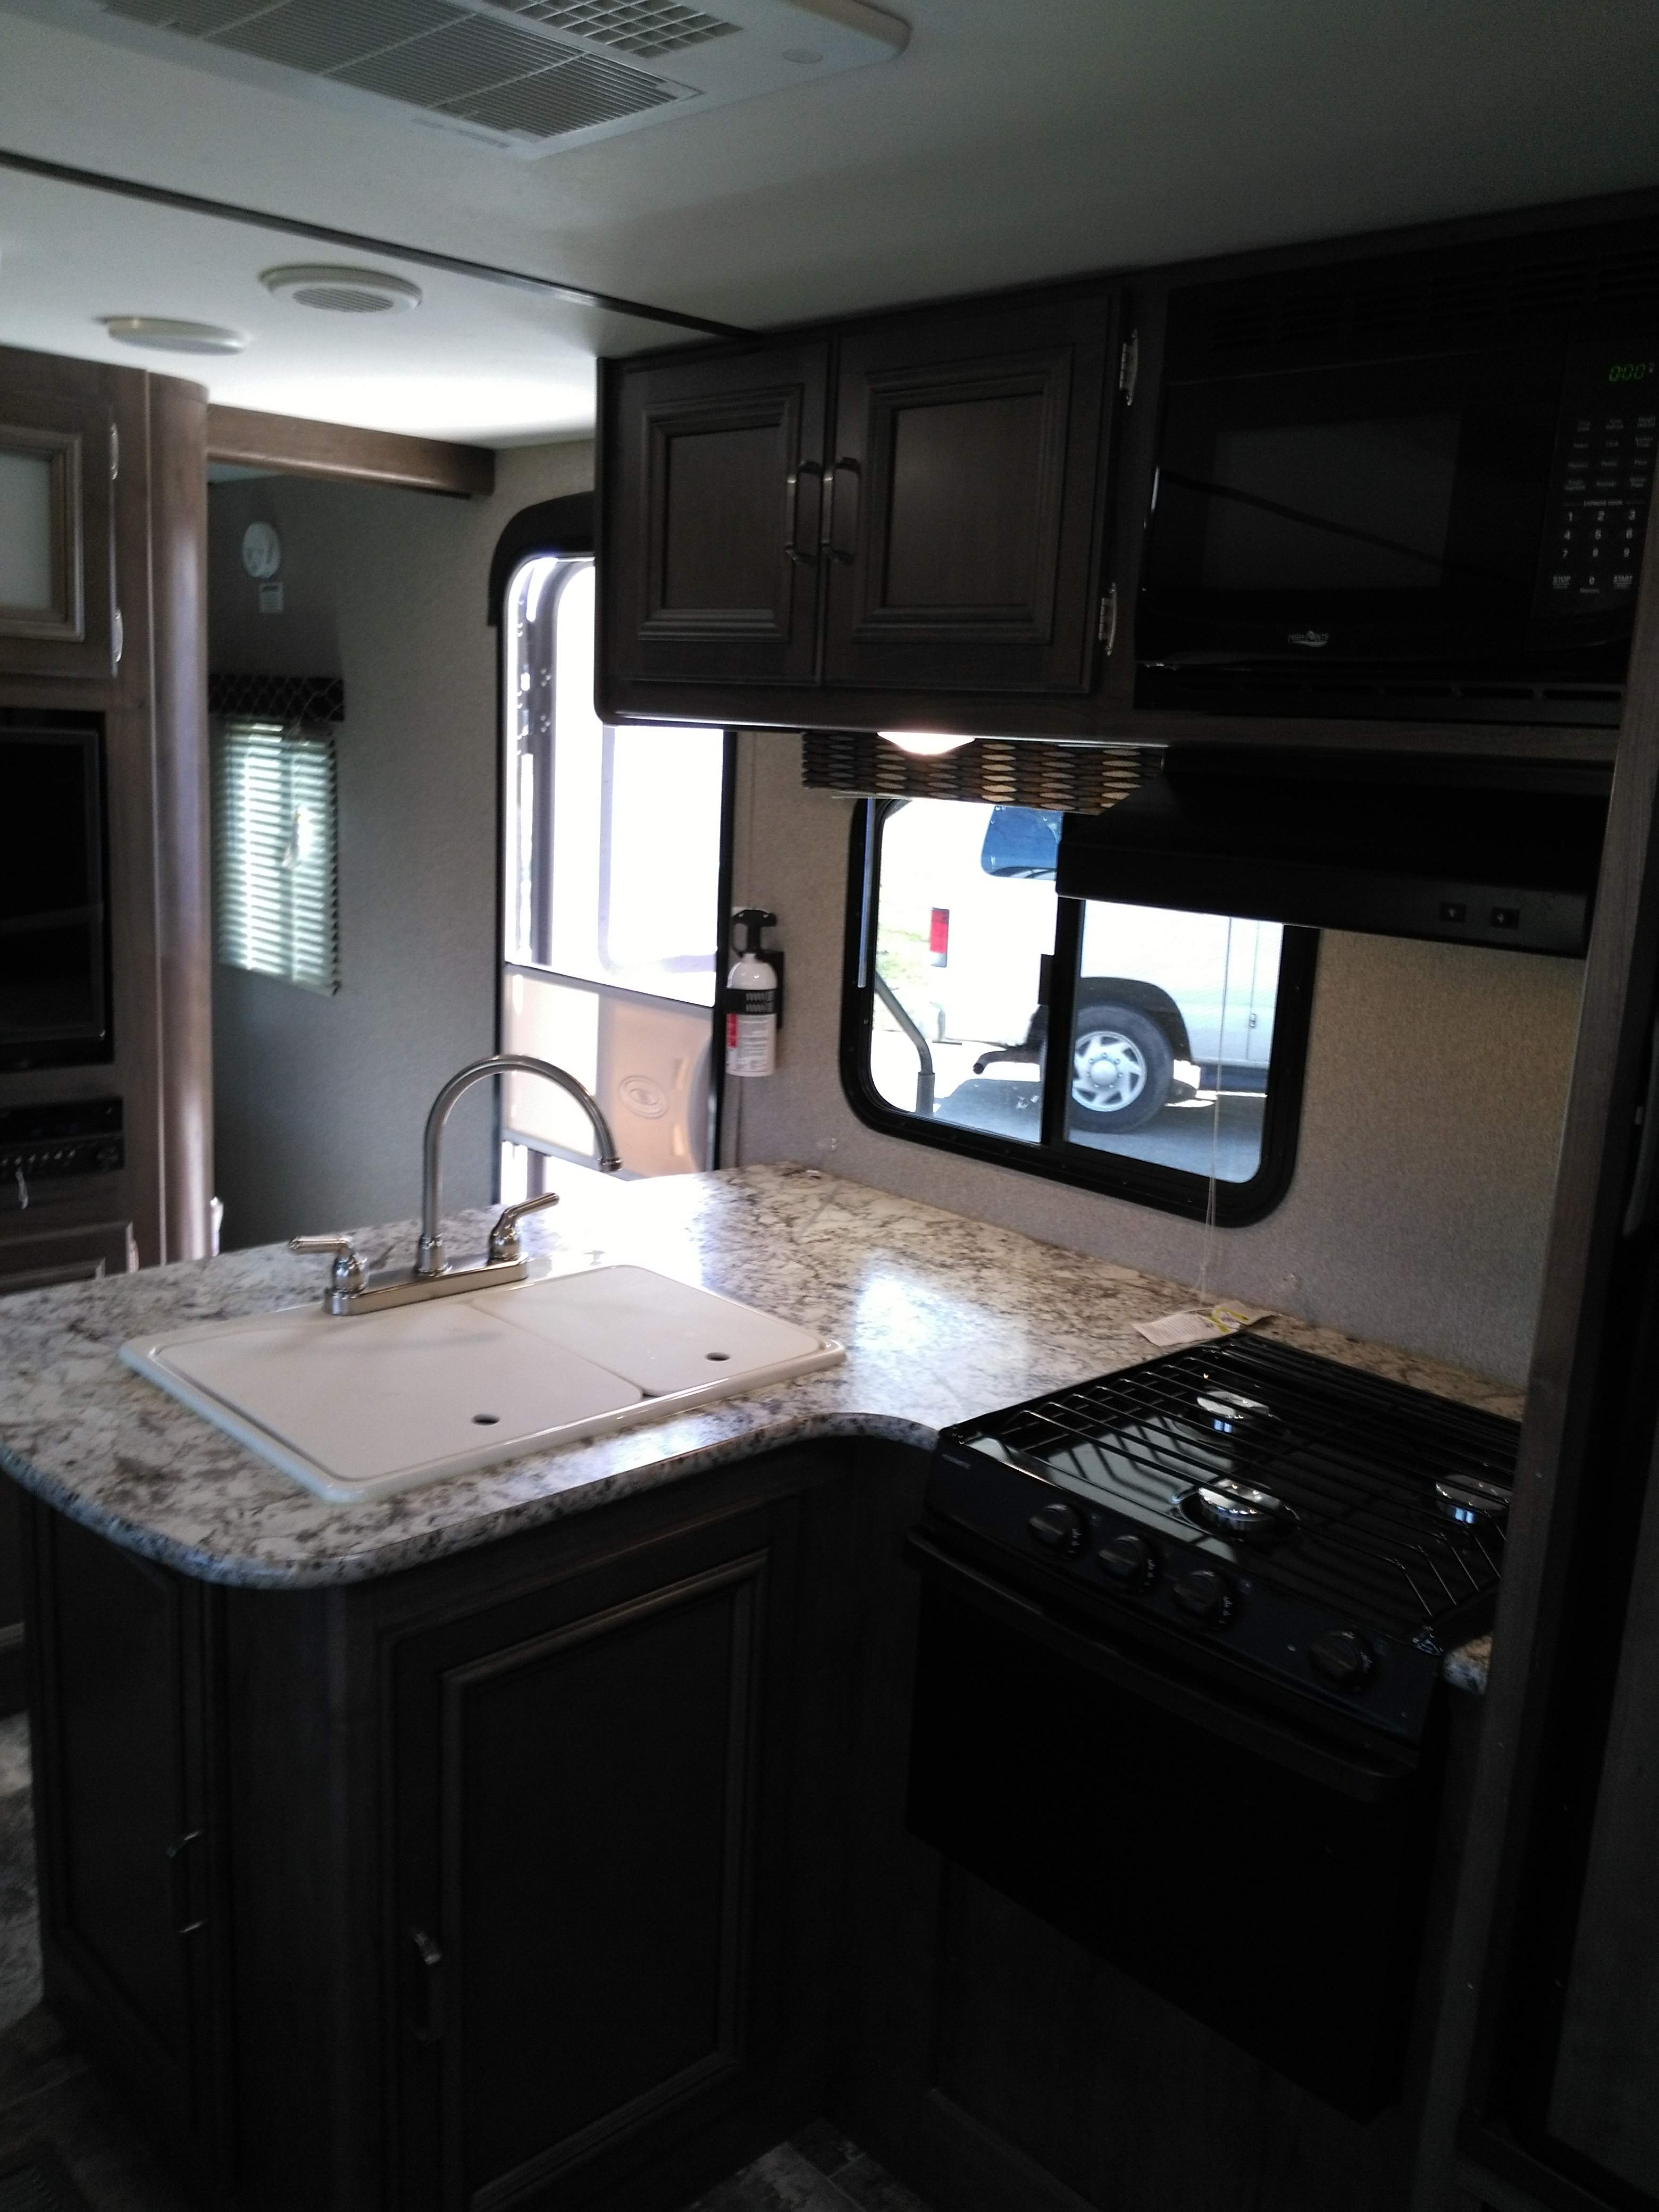 Double sink.  Gas stove, oven, and microwave.  Toaster oven and coffee maker included.  Refrigerator with freezer.. Keystone Passport 2018